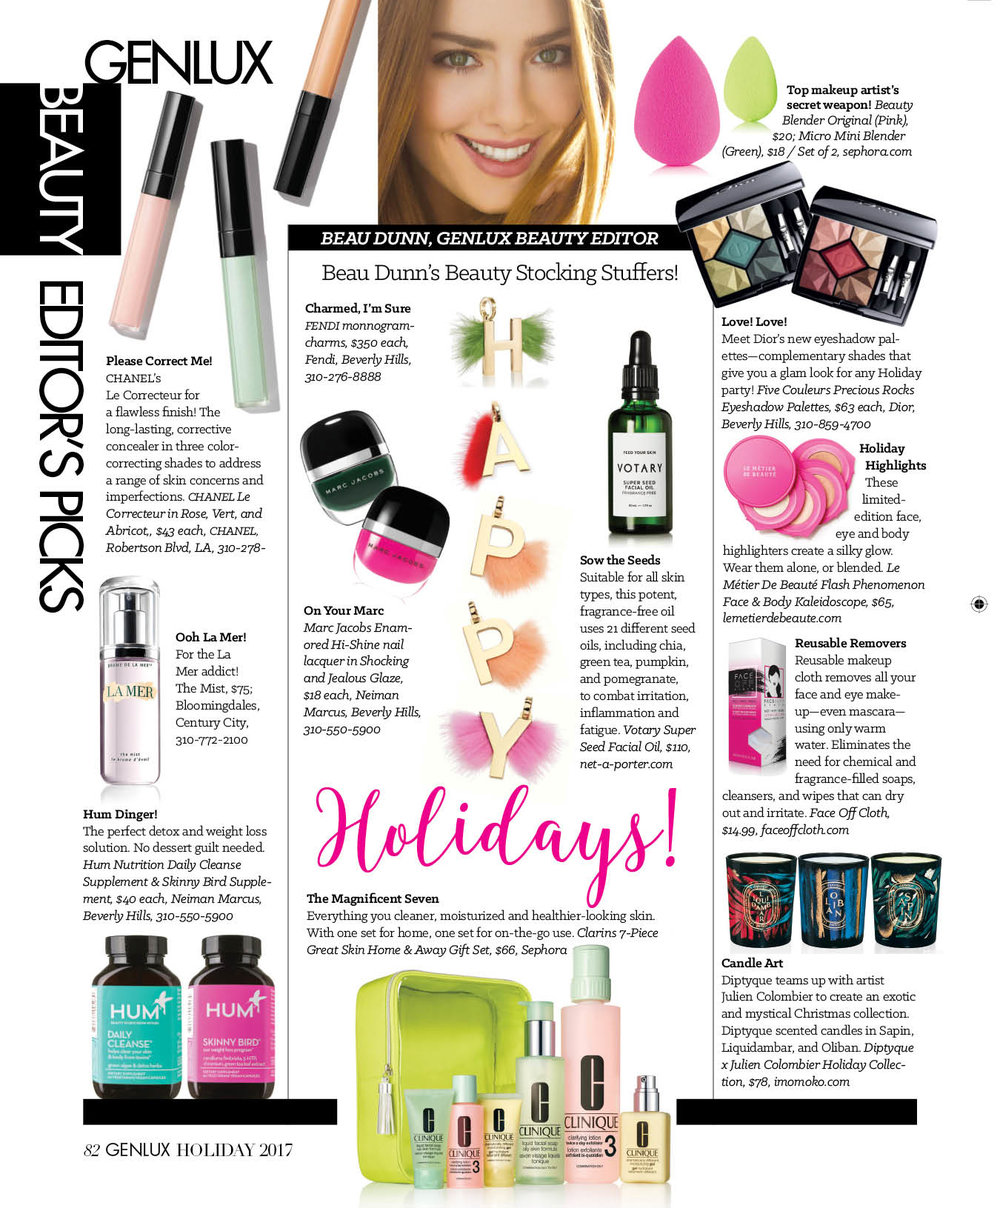 beau_dunn_holiday_beauty_picks_